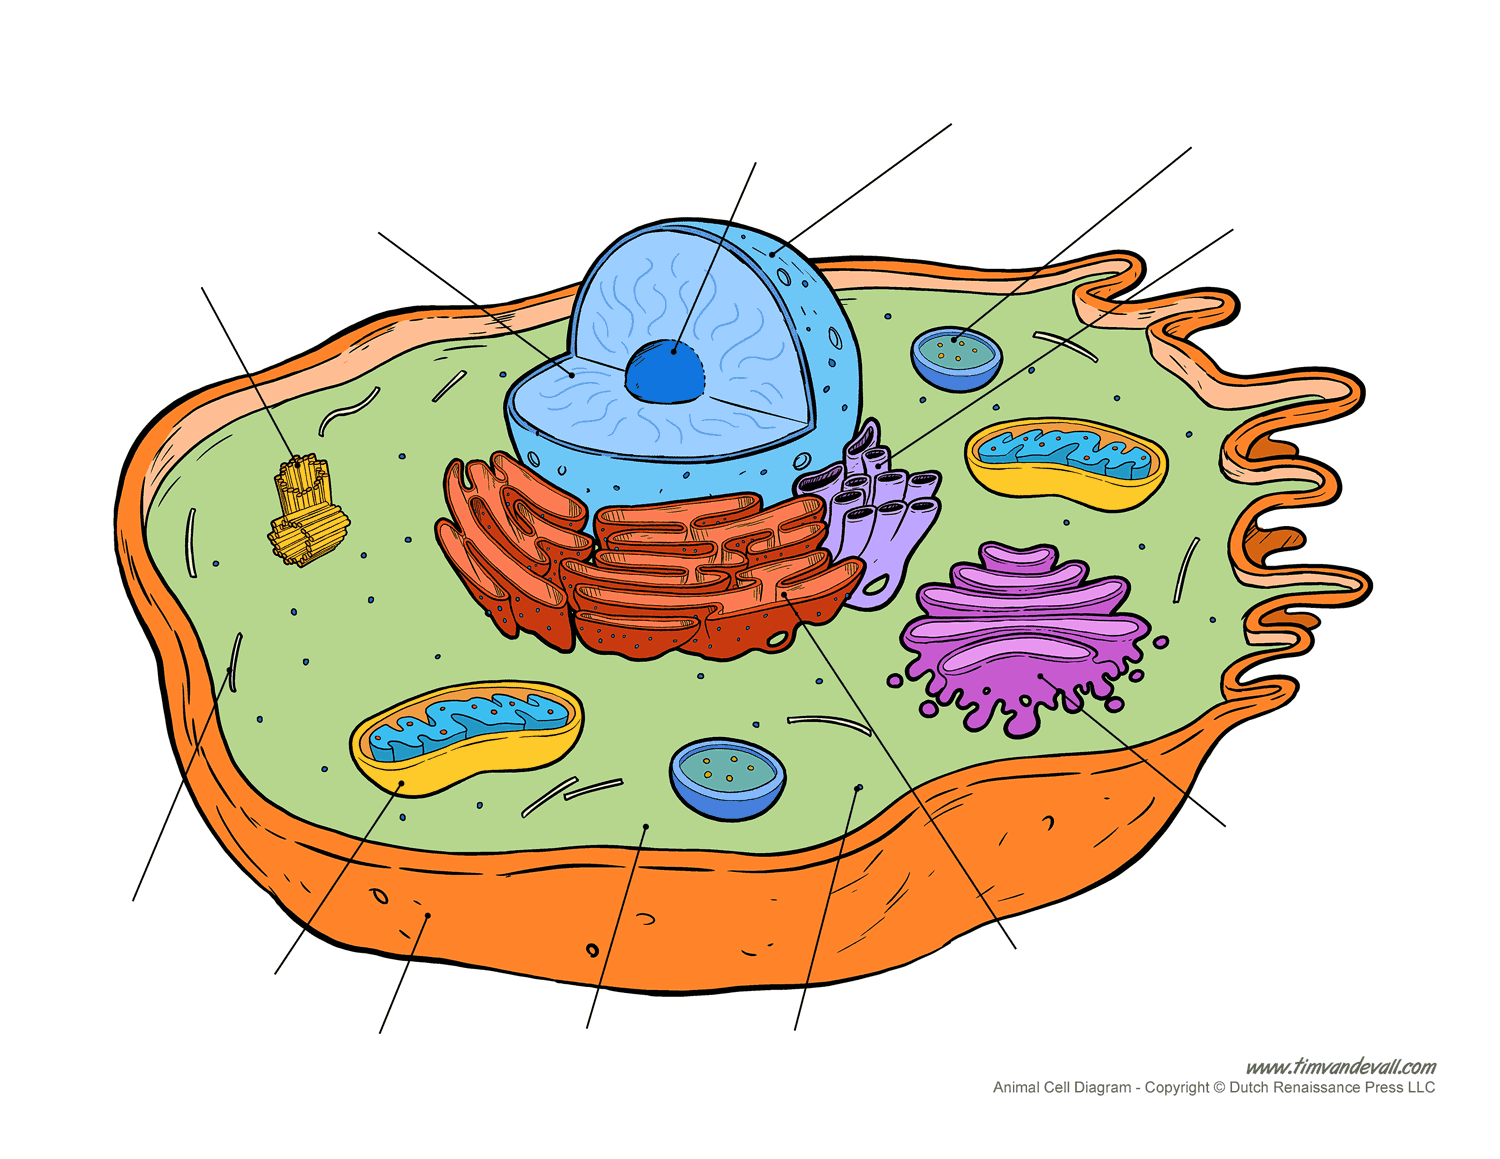 Blank Animal Cell Diagram